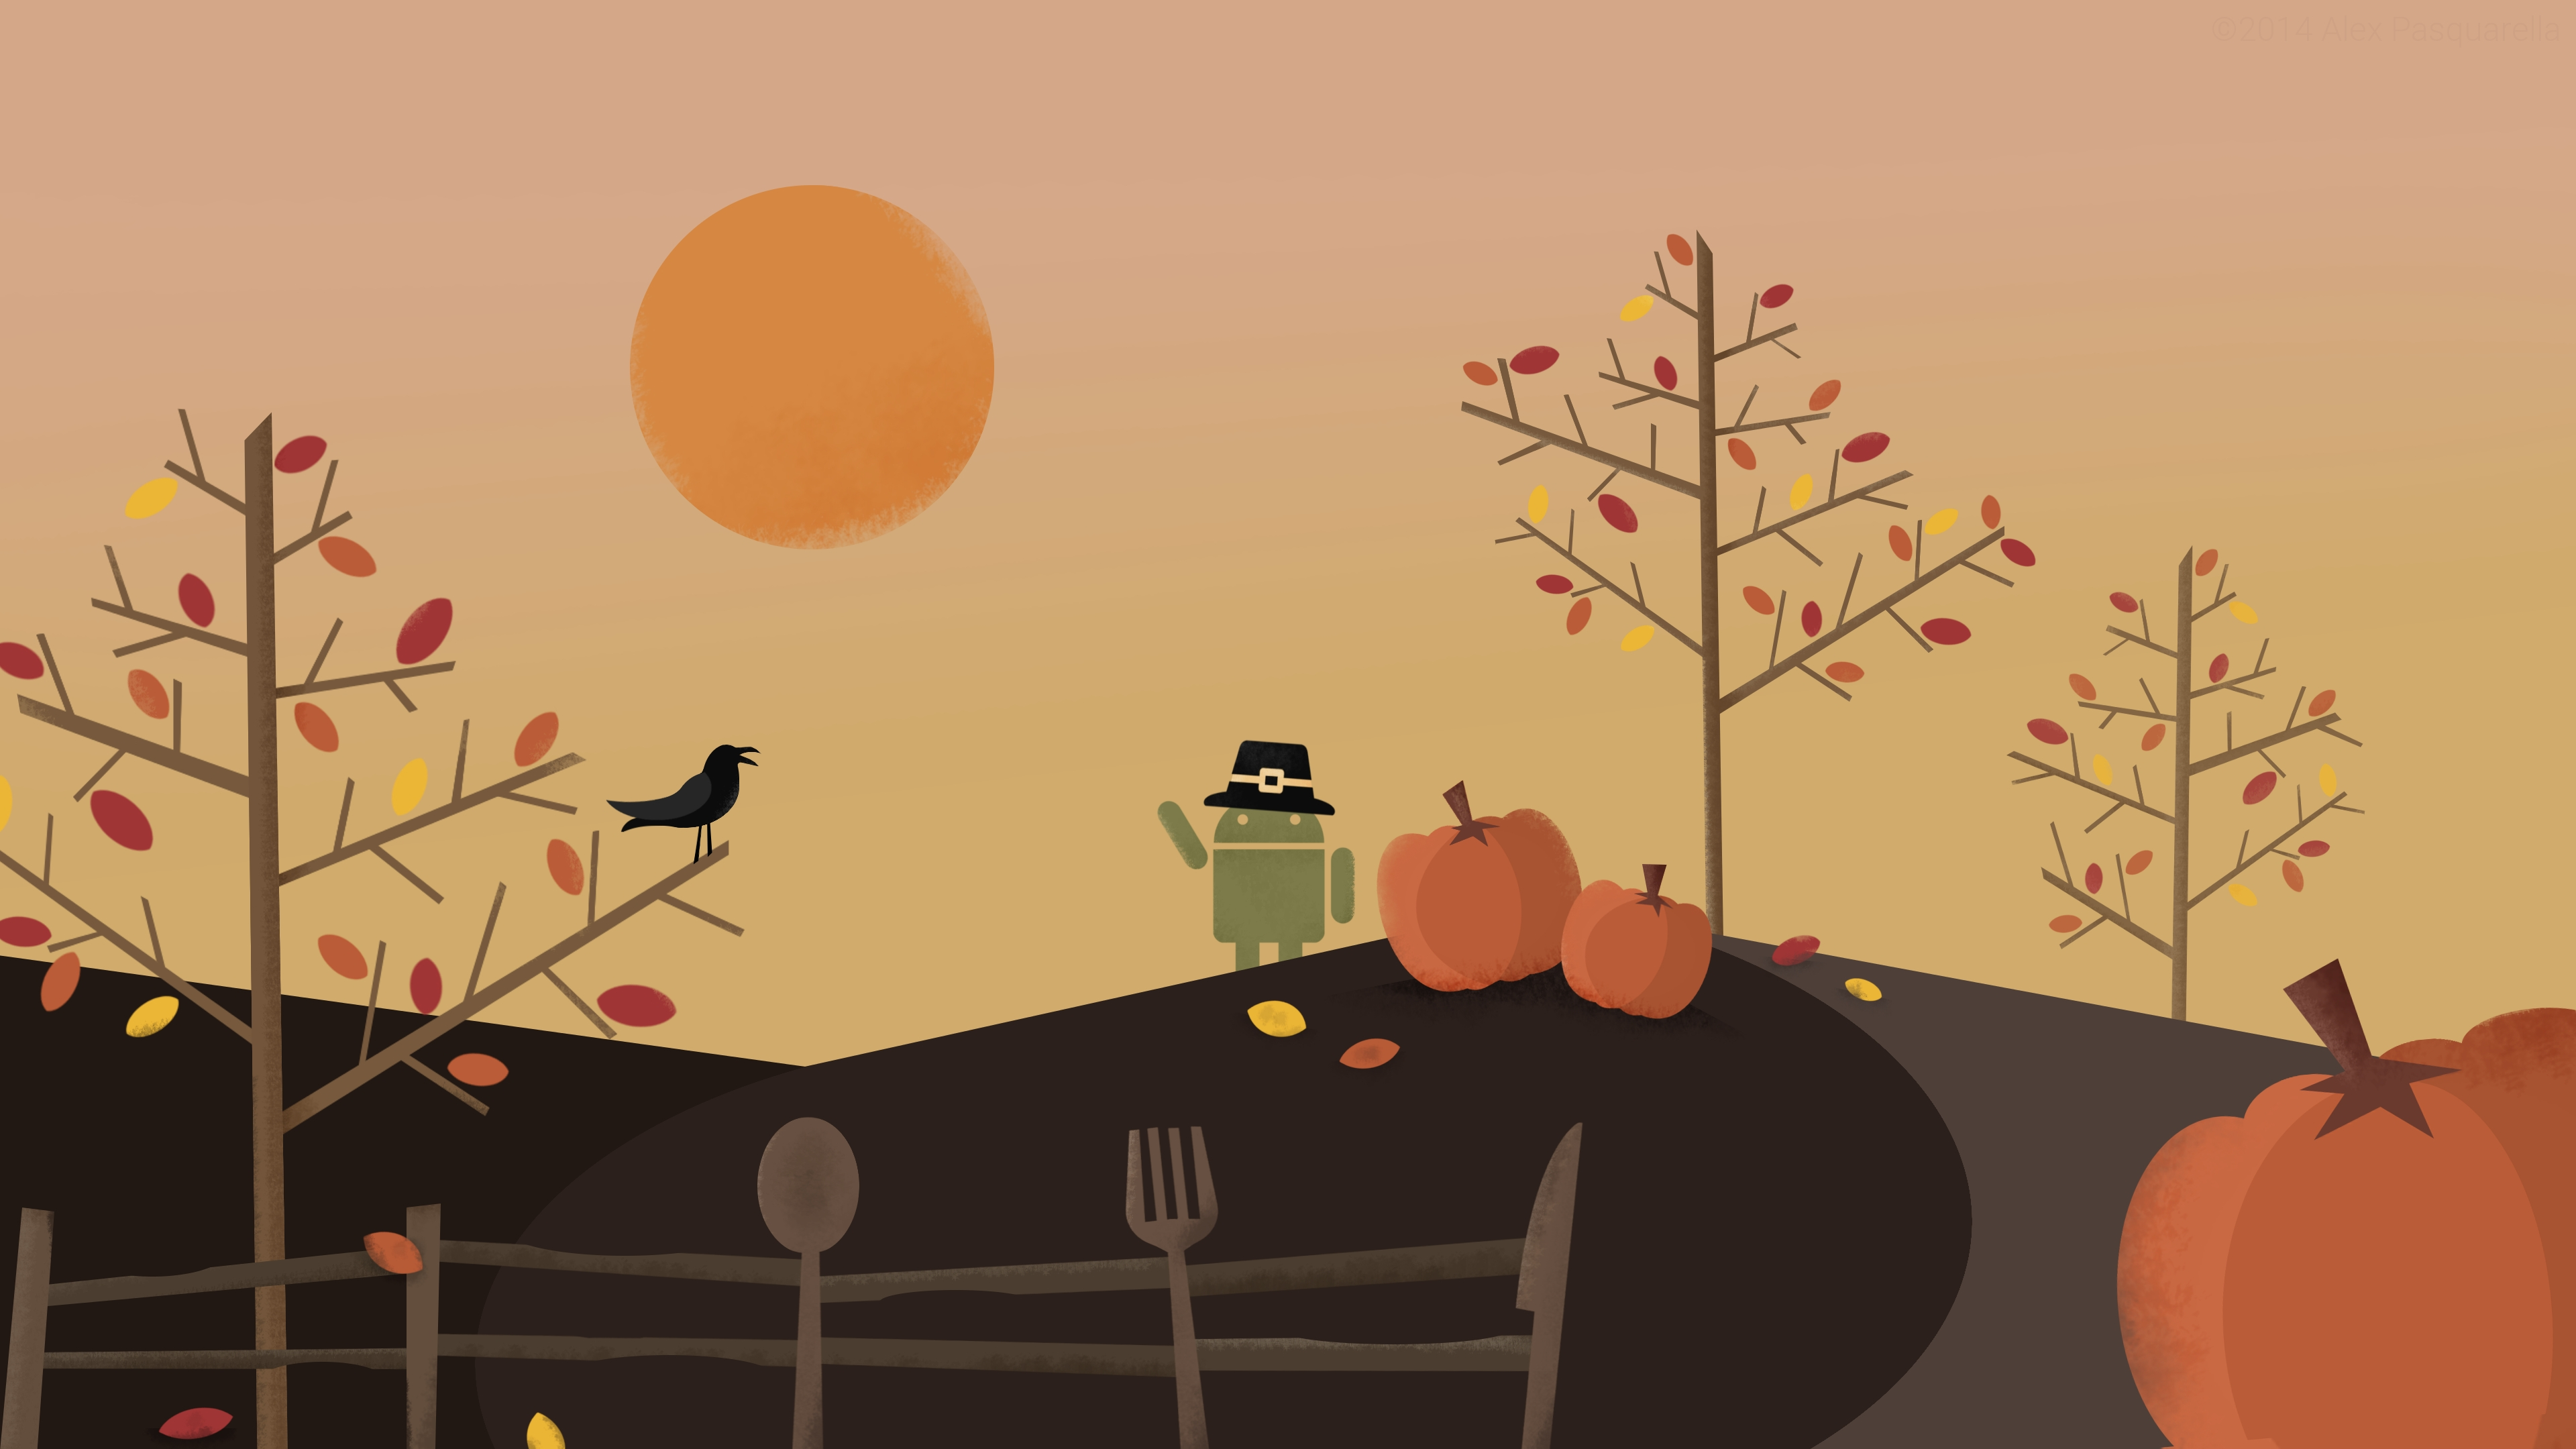 android wallpaper: roboto thanksgiving